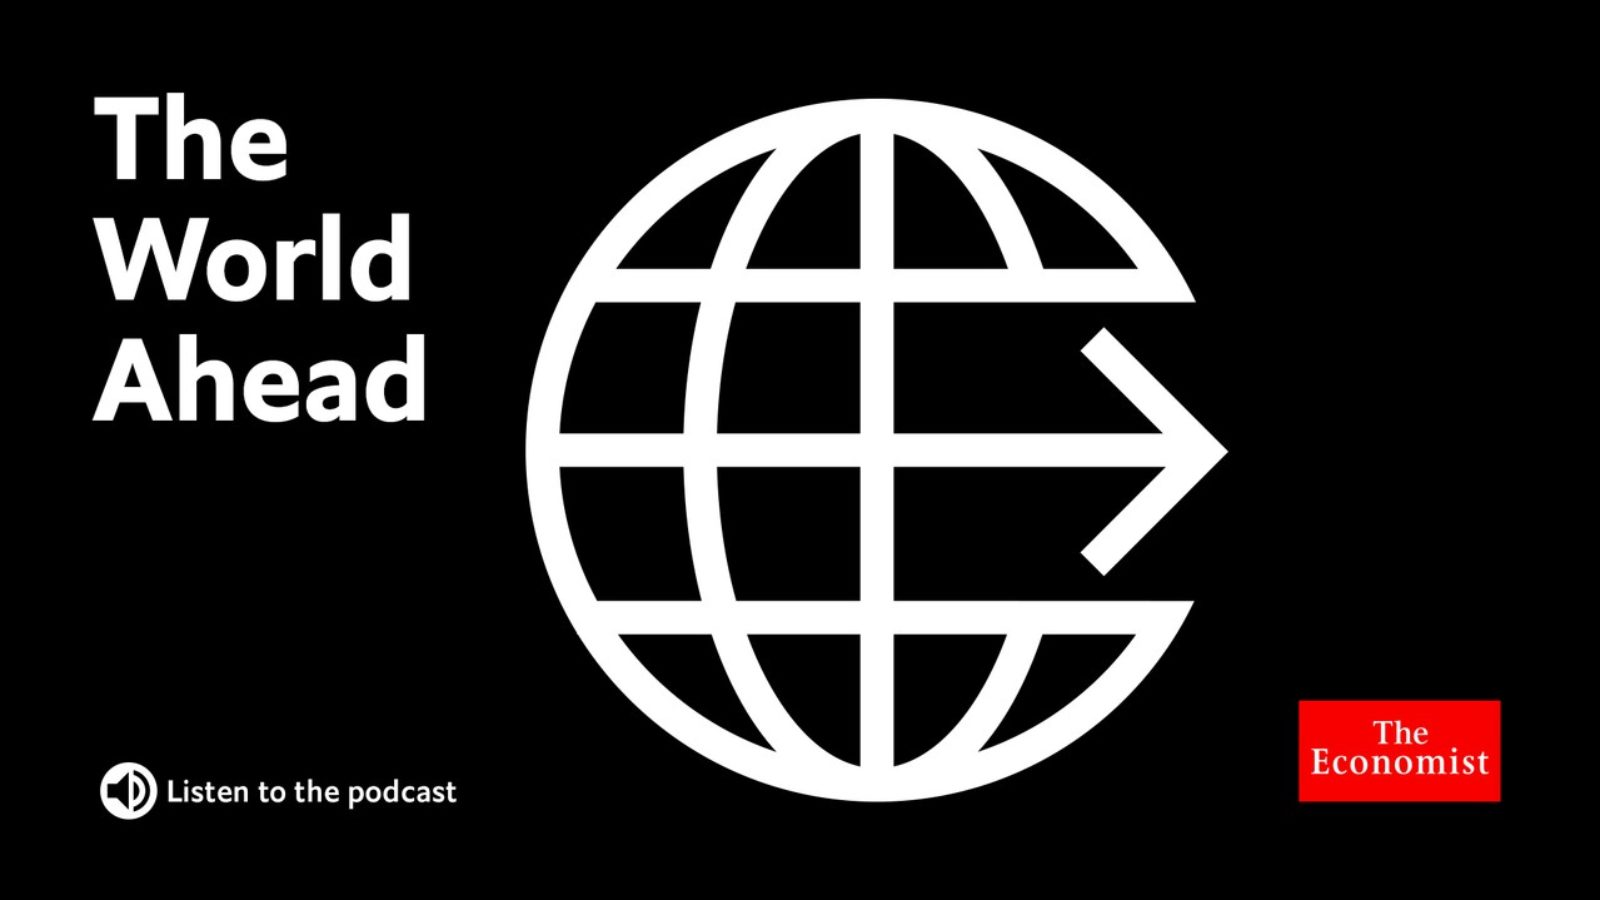 logo for The World Ahead podcast from the Economist